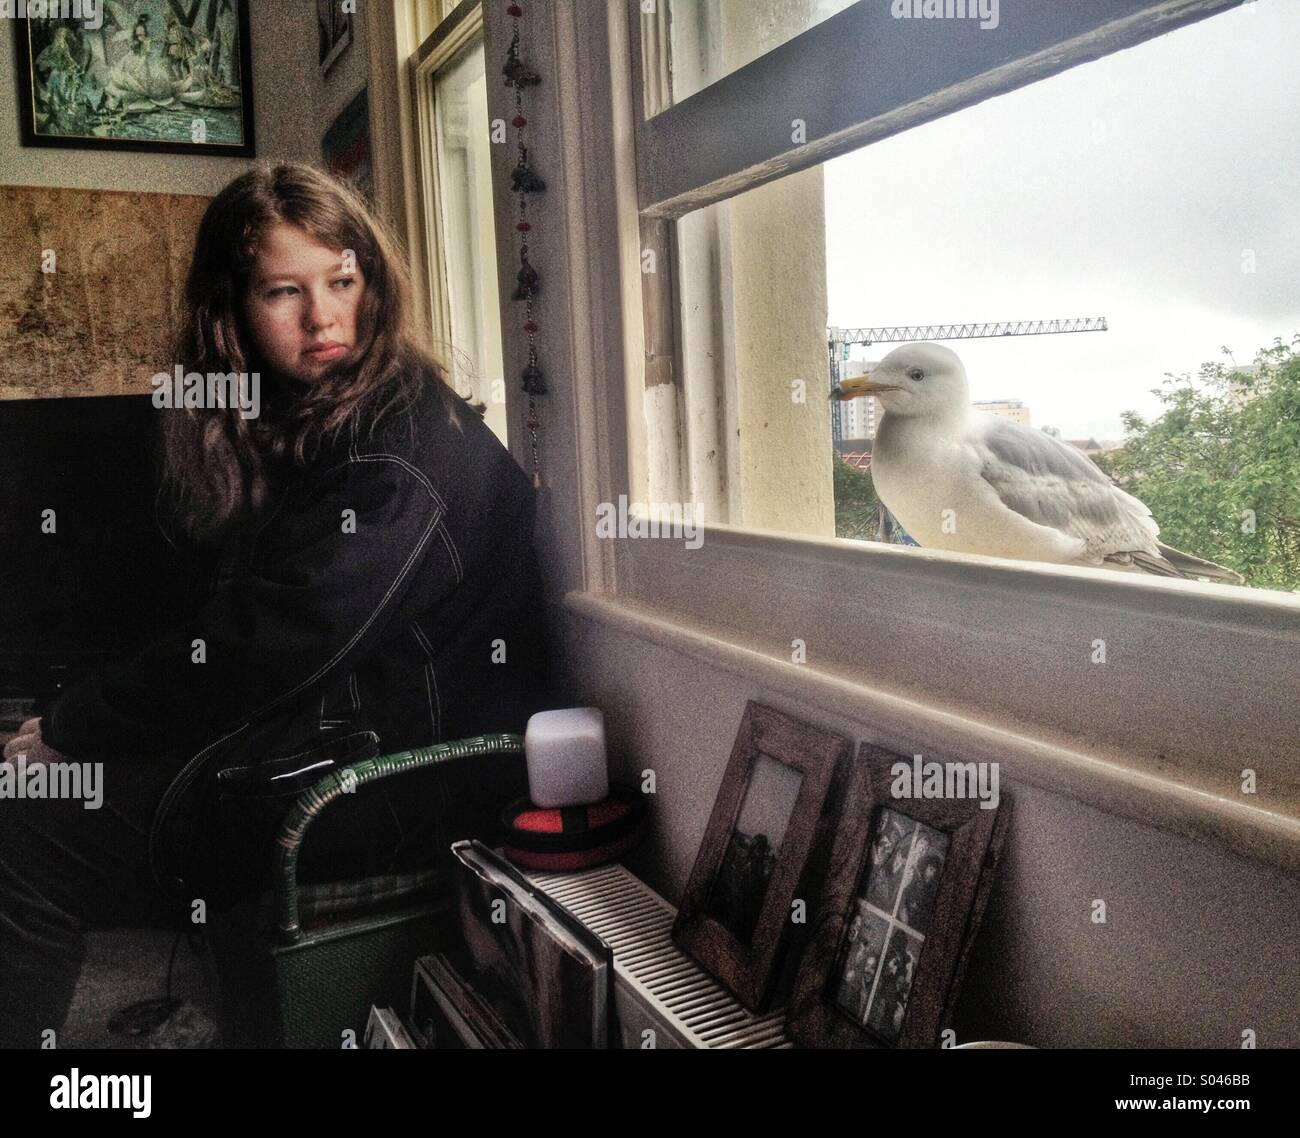 Nosy seagull, teenage girl aged 15-16 years, sitting indoors, looking at seagull by window - Stock Image